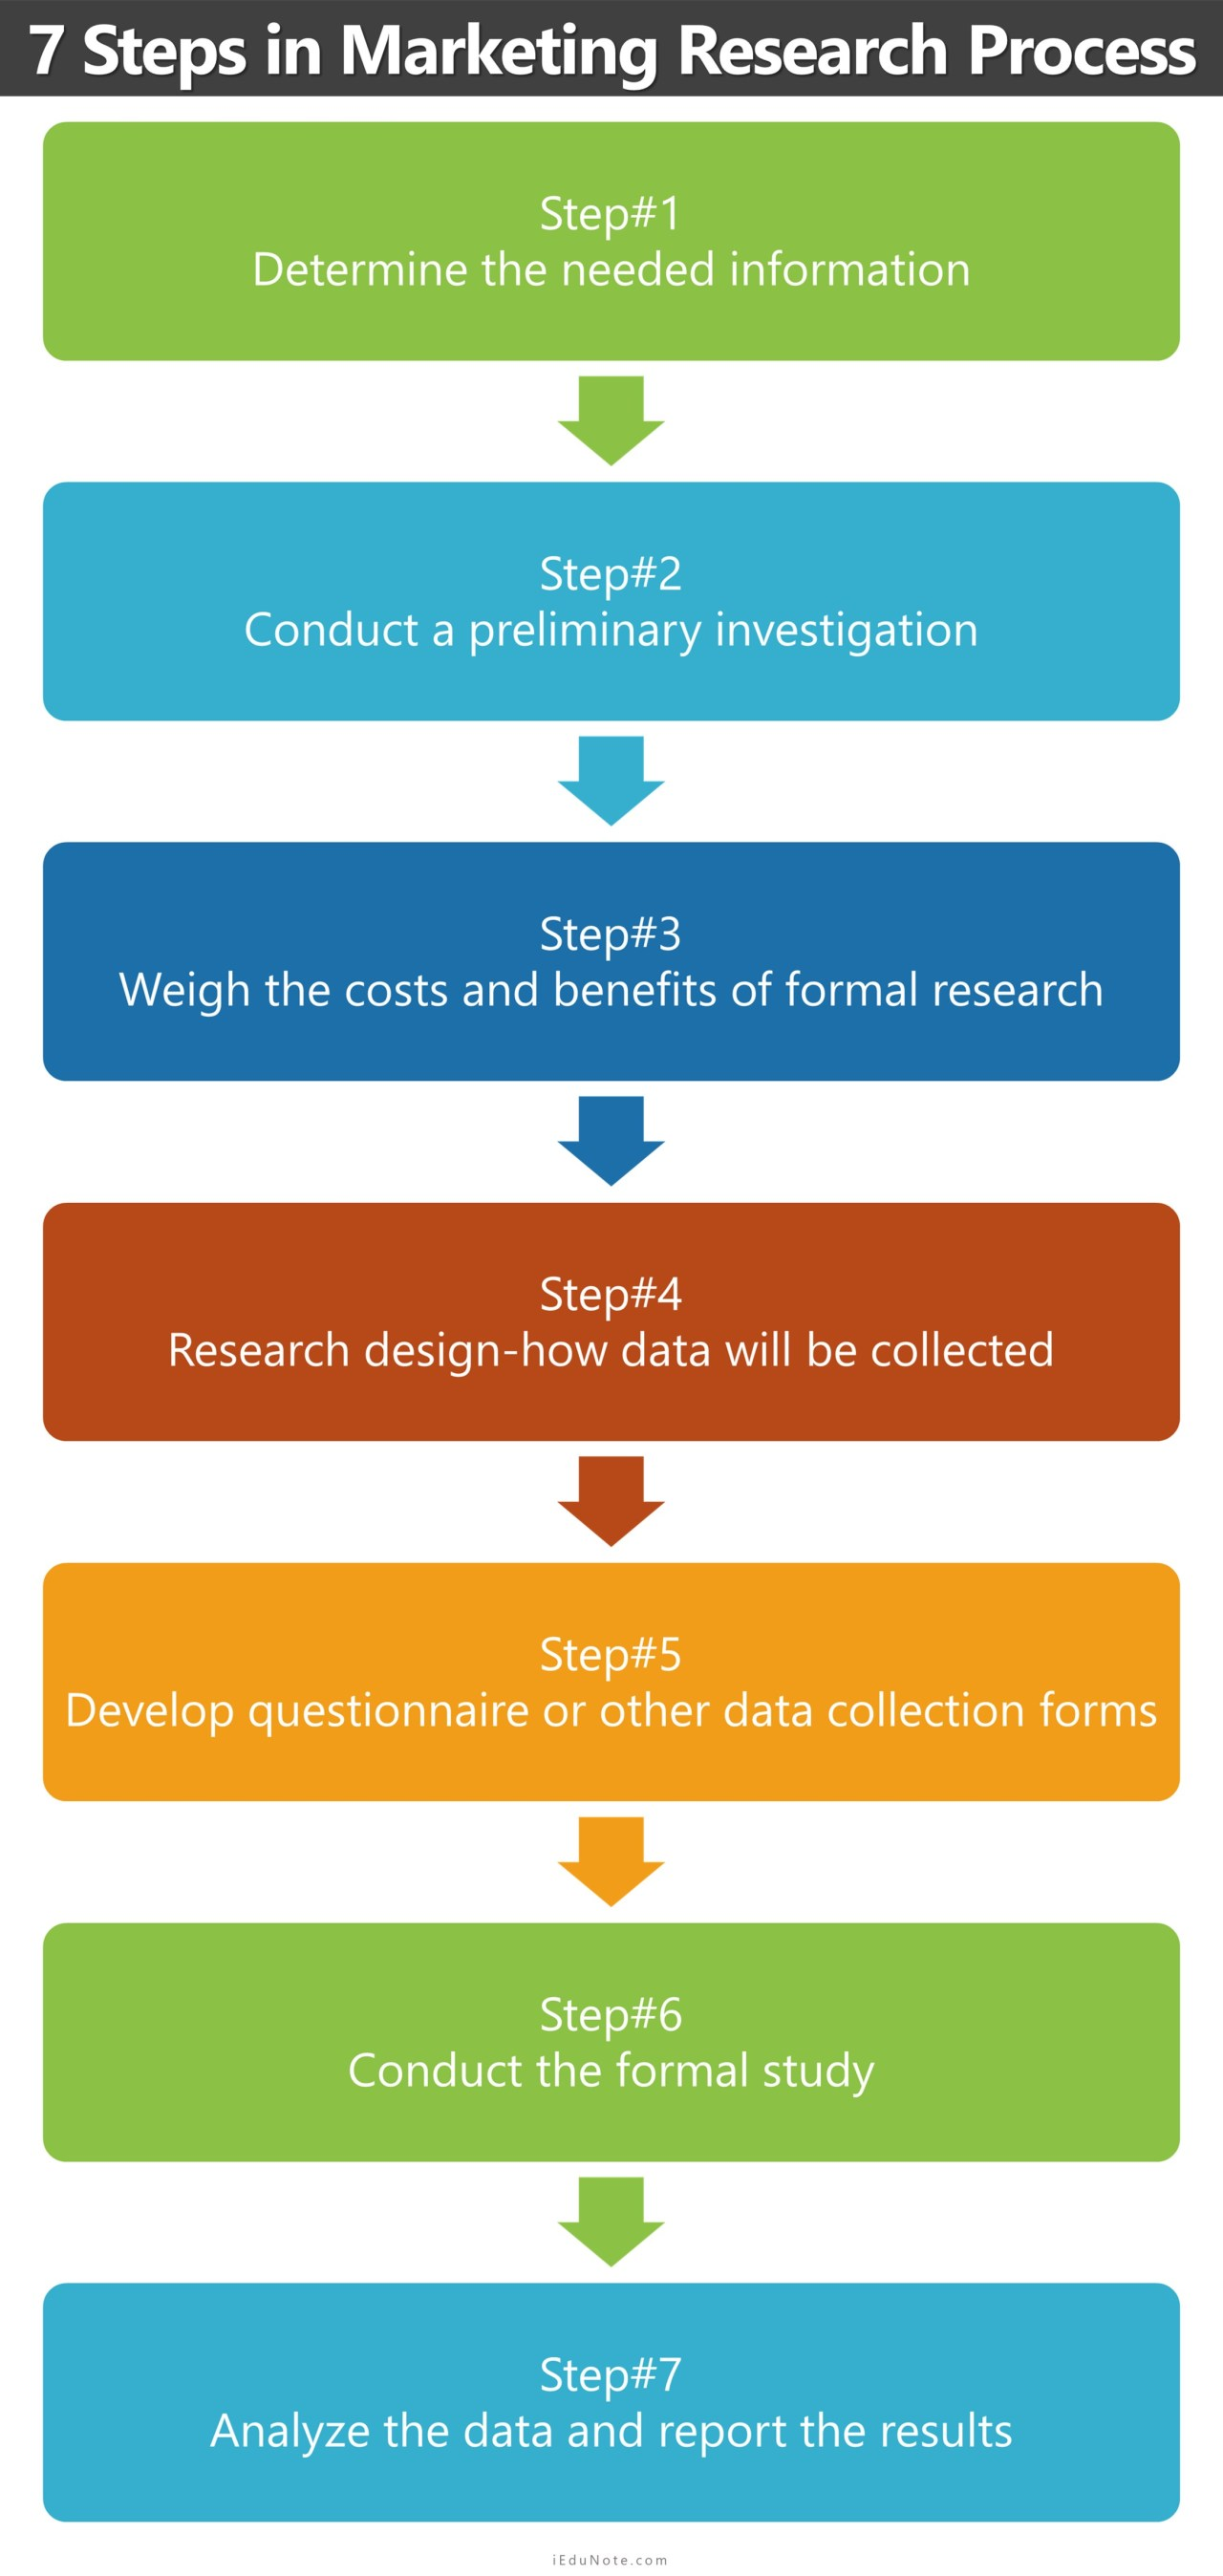 7 Steps in the Marketing Research Process in Details